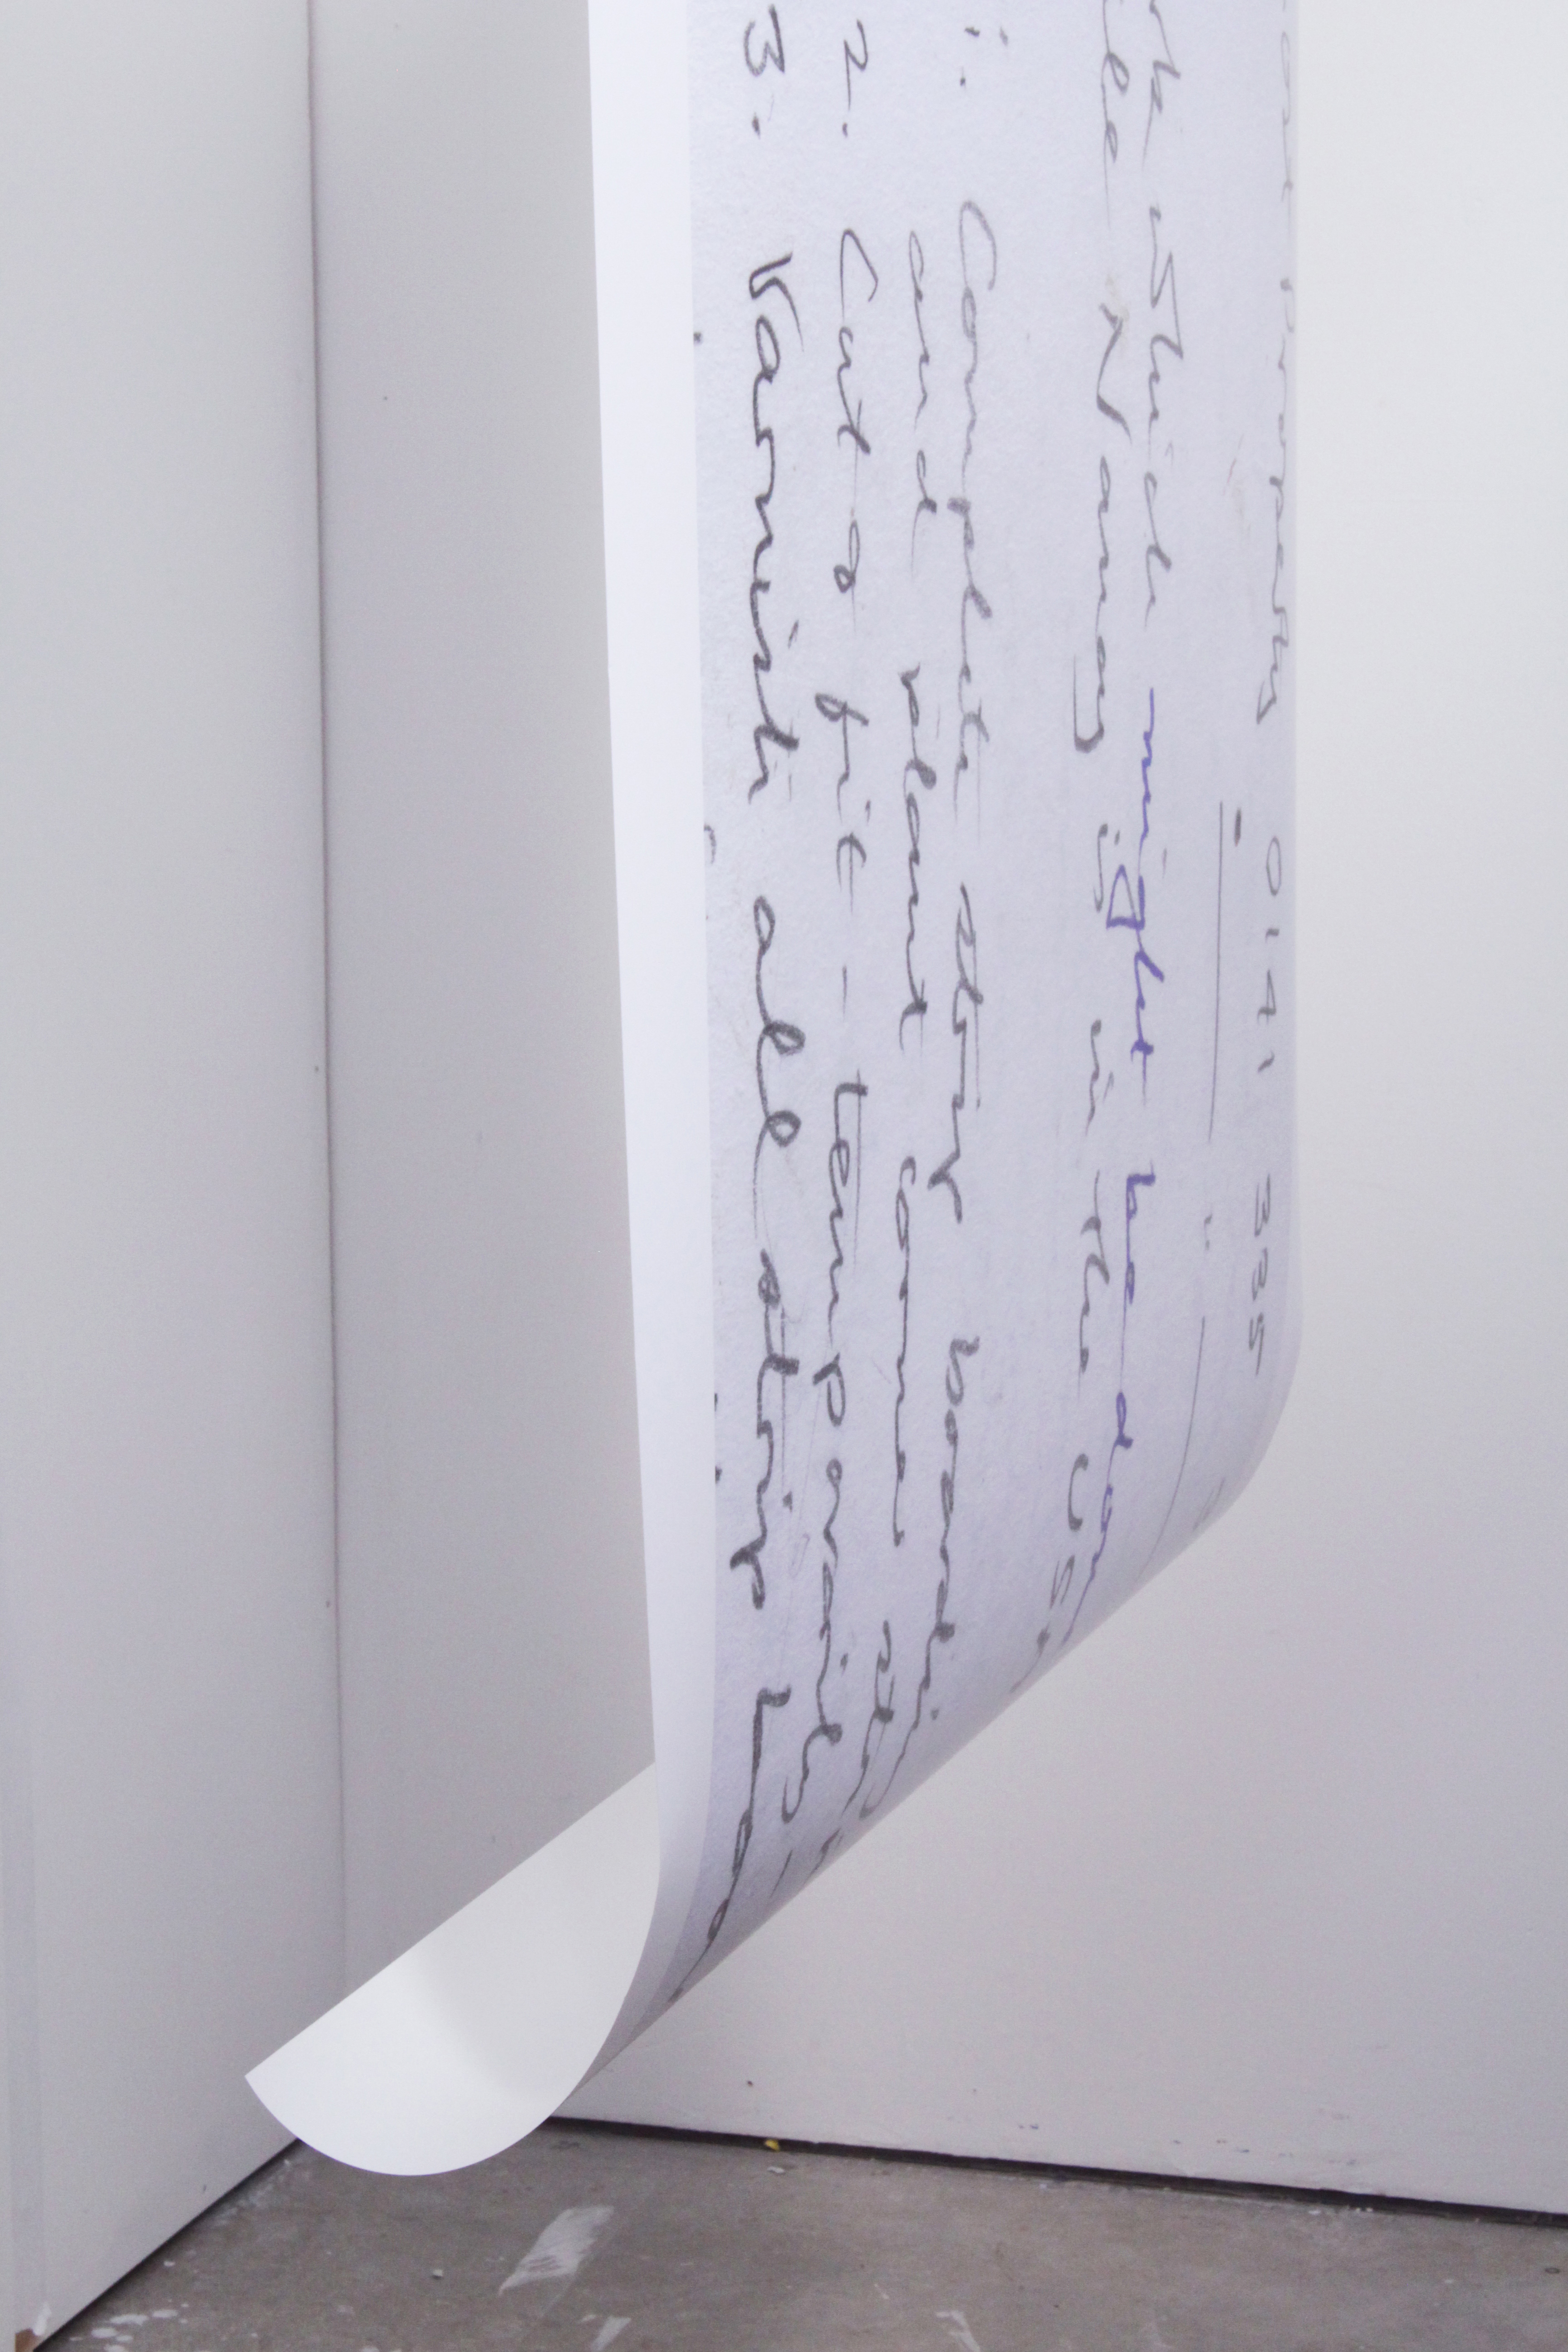 The image depicts a close up view of an enlarged to do list about 1 metre in width and 2 metres in length hanging from a bar raised about 7 foot from the floor in the middle of a small rectangular studio space. The room is empty and blank.